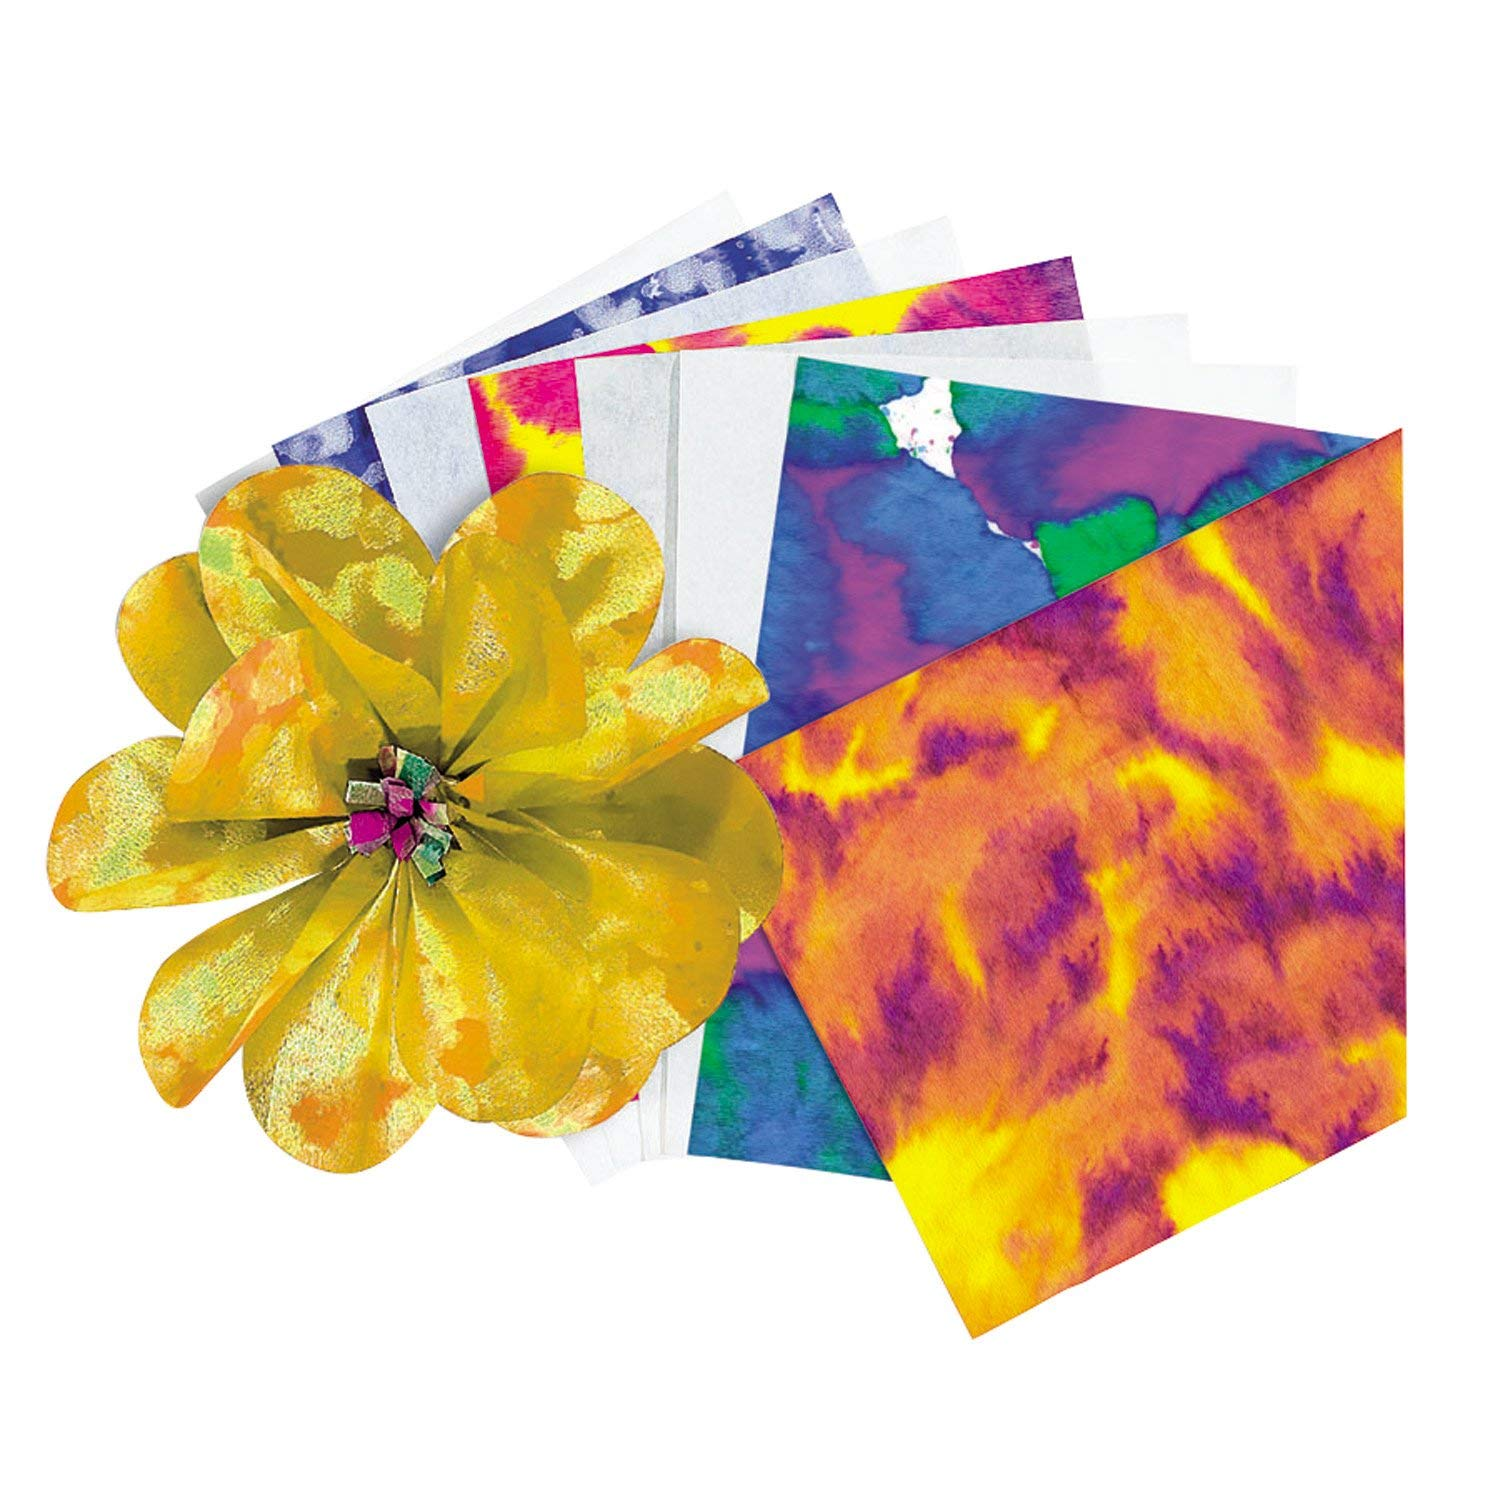 R15213 Color Diffusing Paper, Fabric-like paper with great texture By Roylco